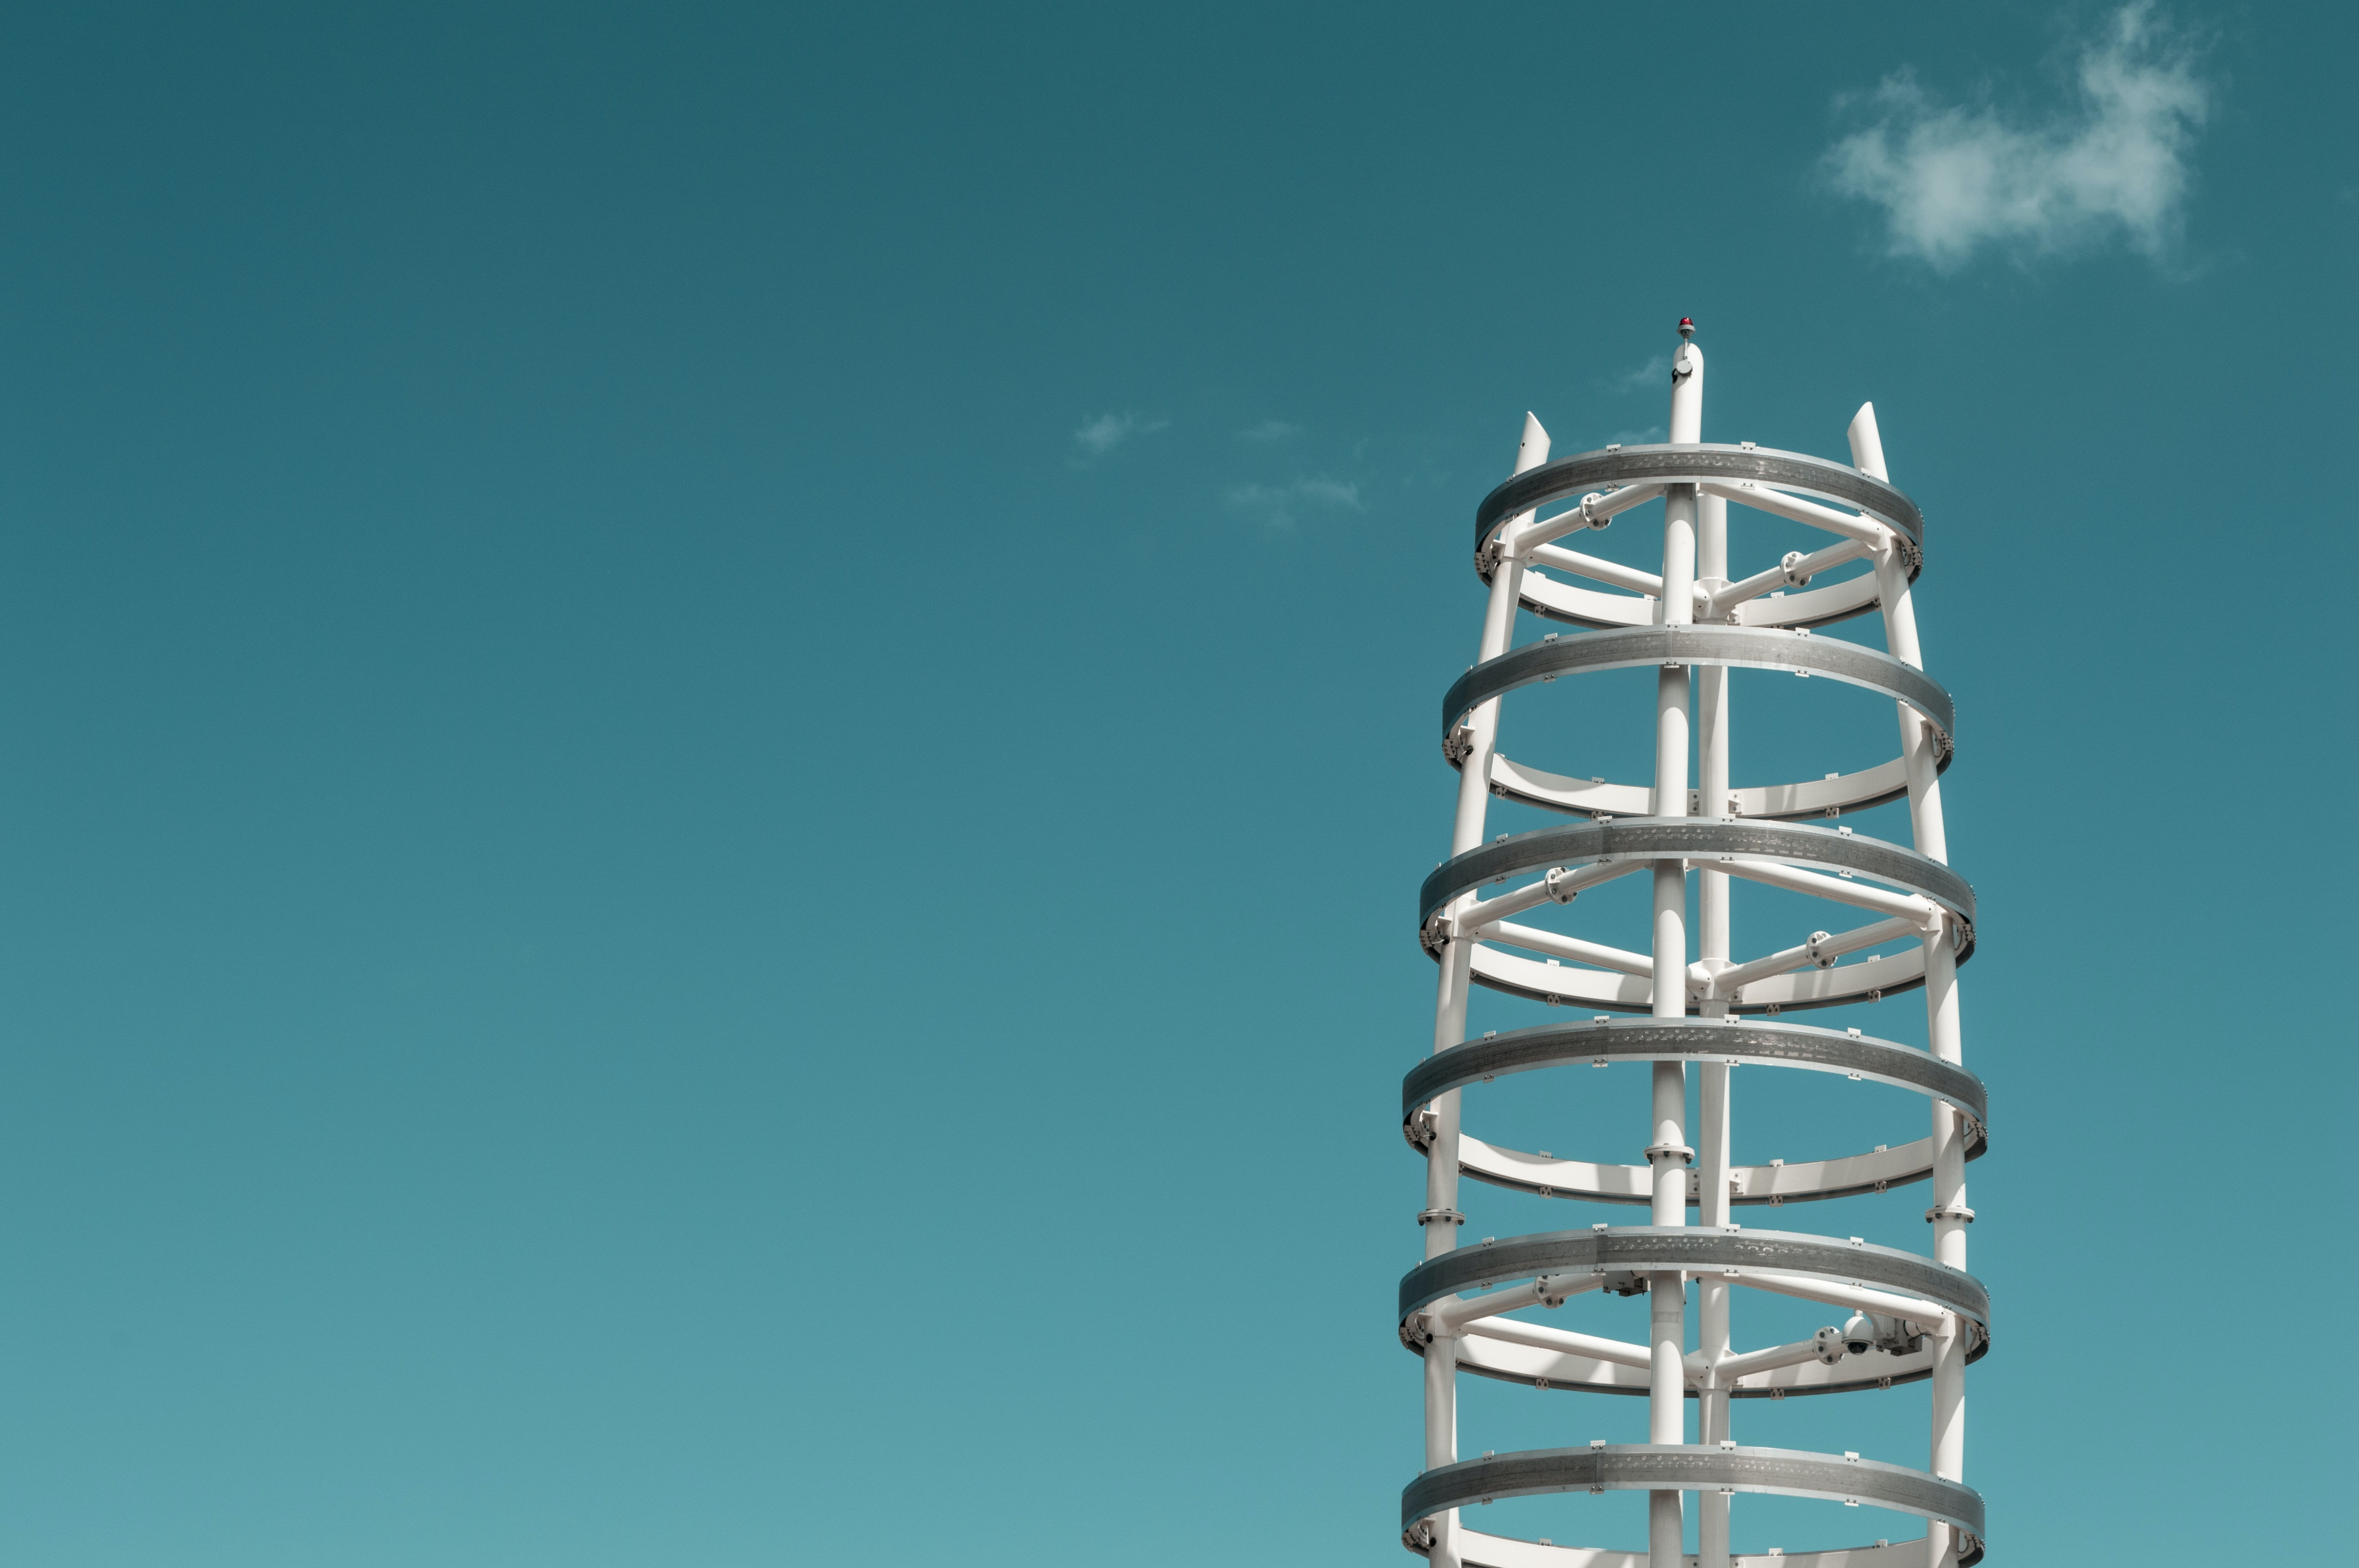 A white steel structure with gray rings against an azure sky